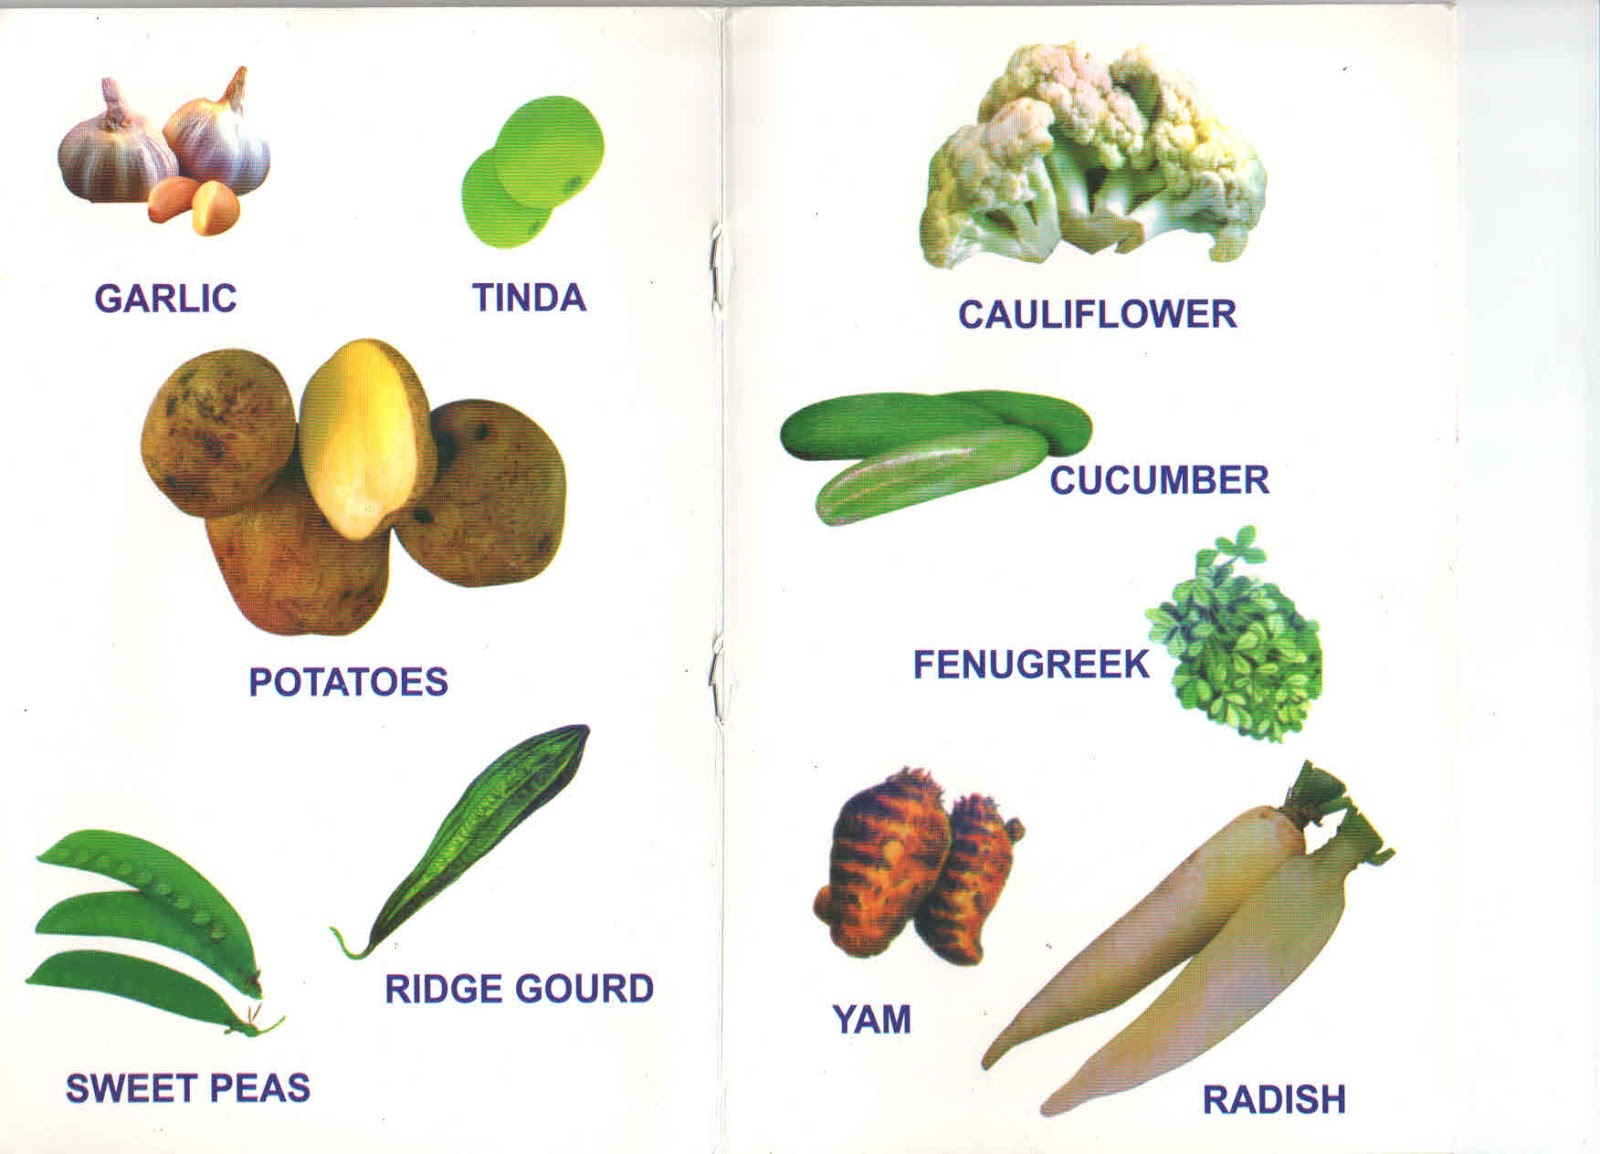 Vegetables List Bonala Kondal: The lis...